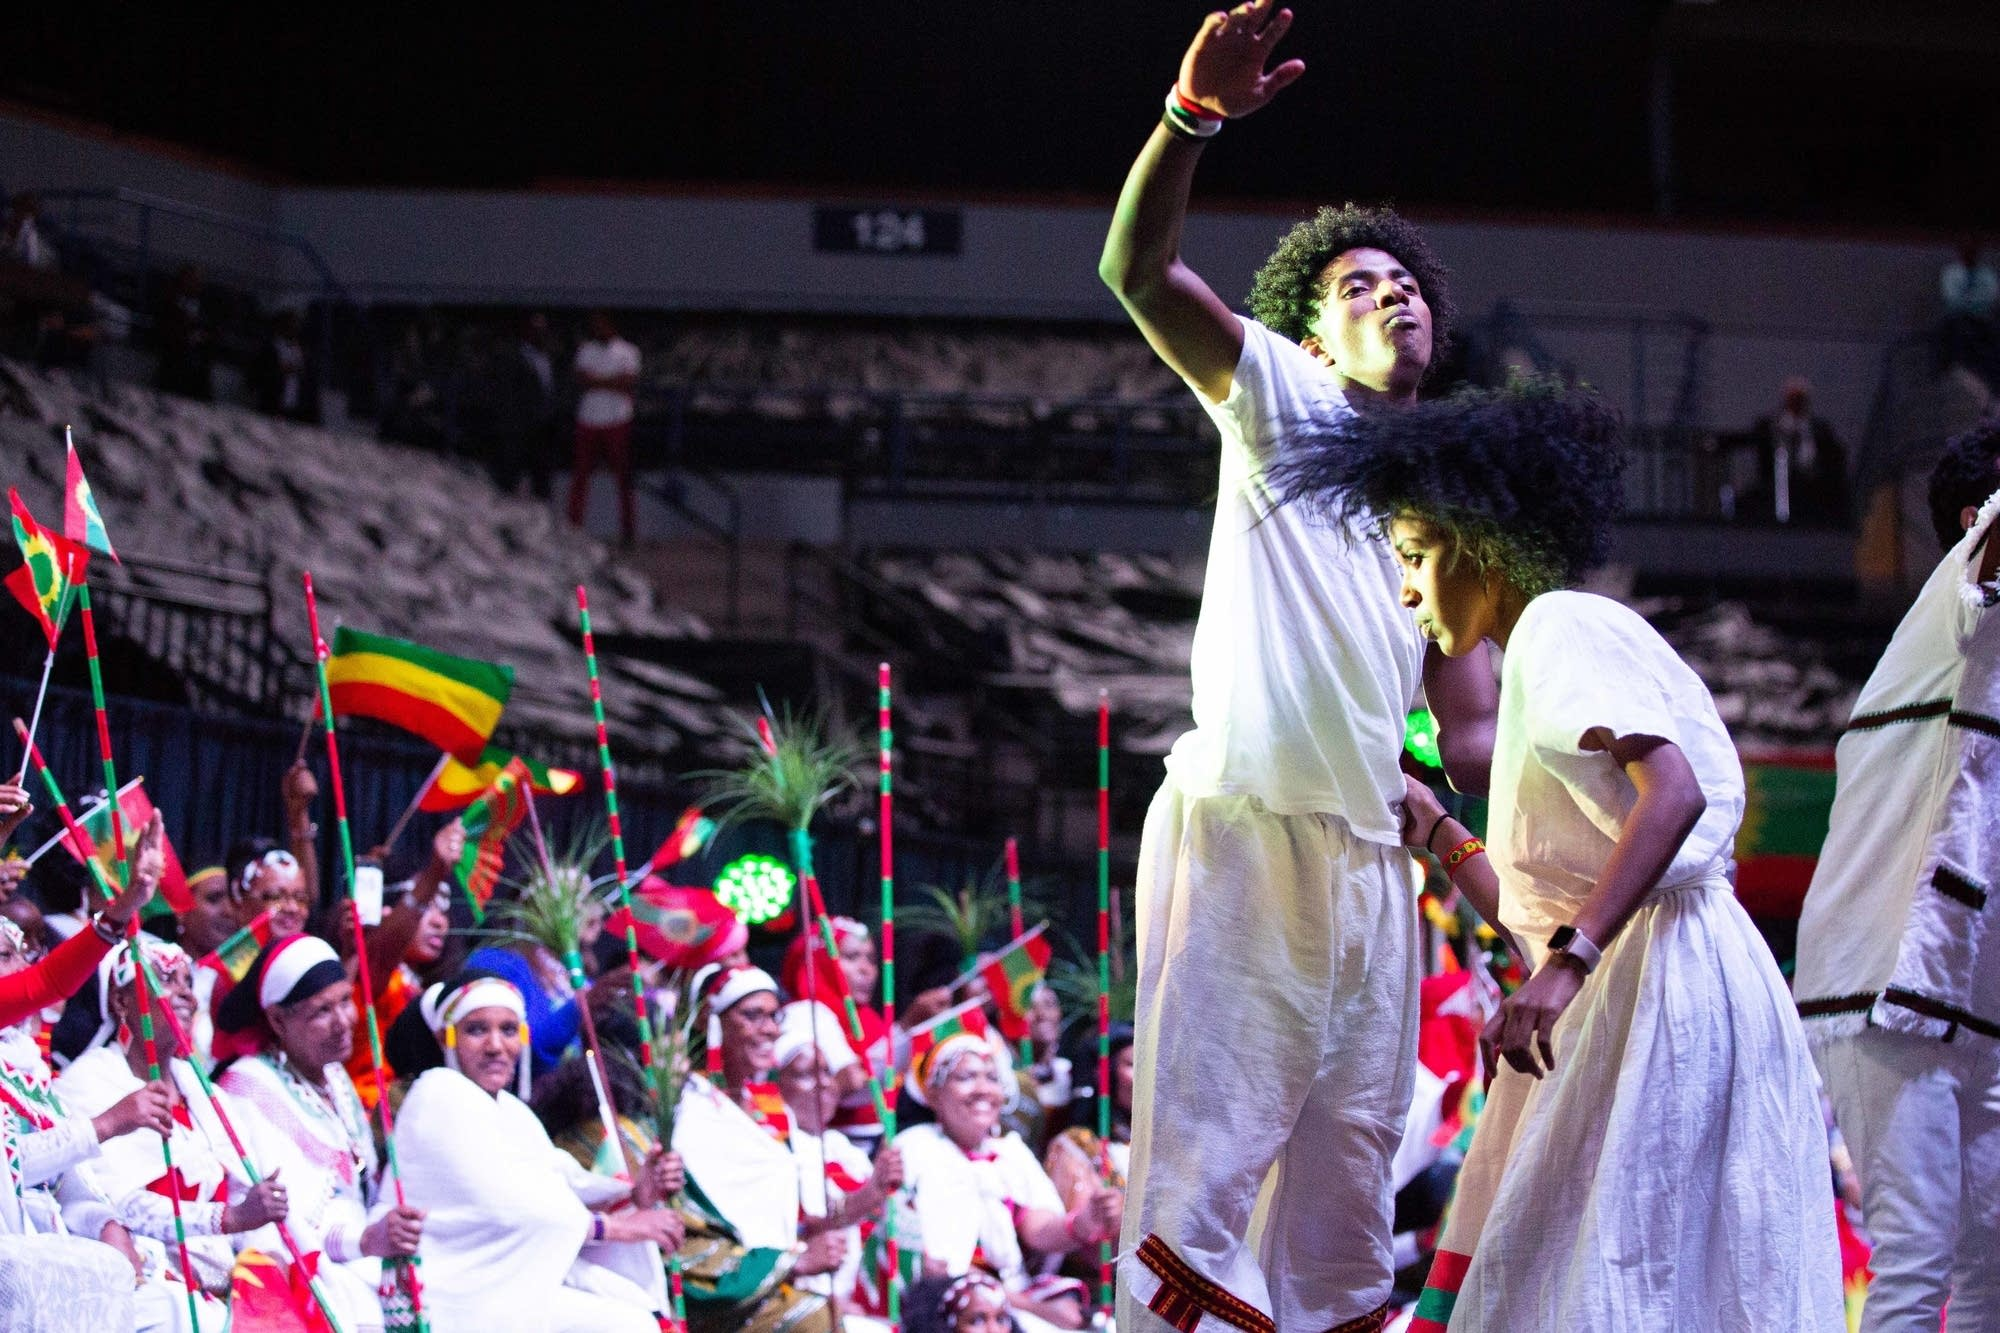 Dancers perform on stage for Ethiopian Prime Minister Abiy Ahmed.